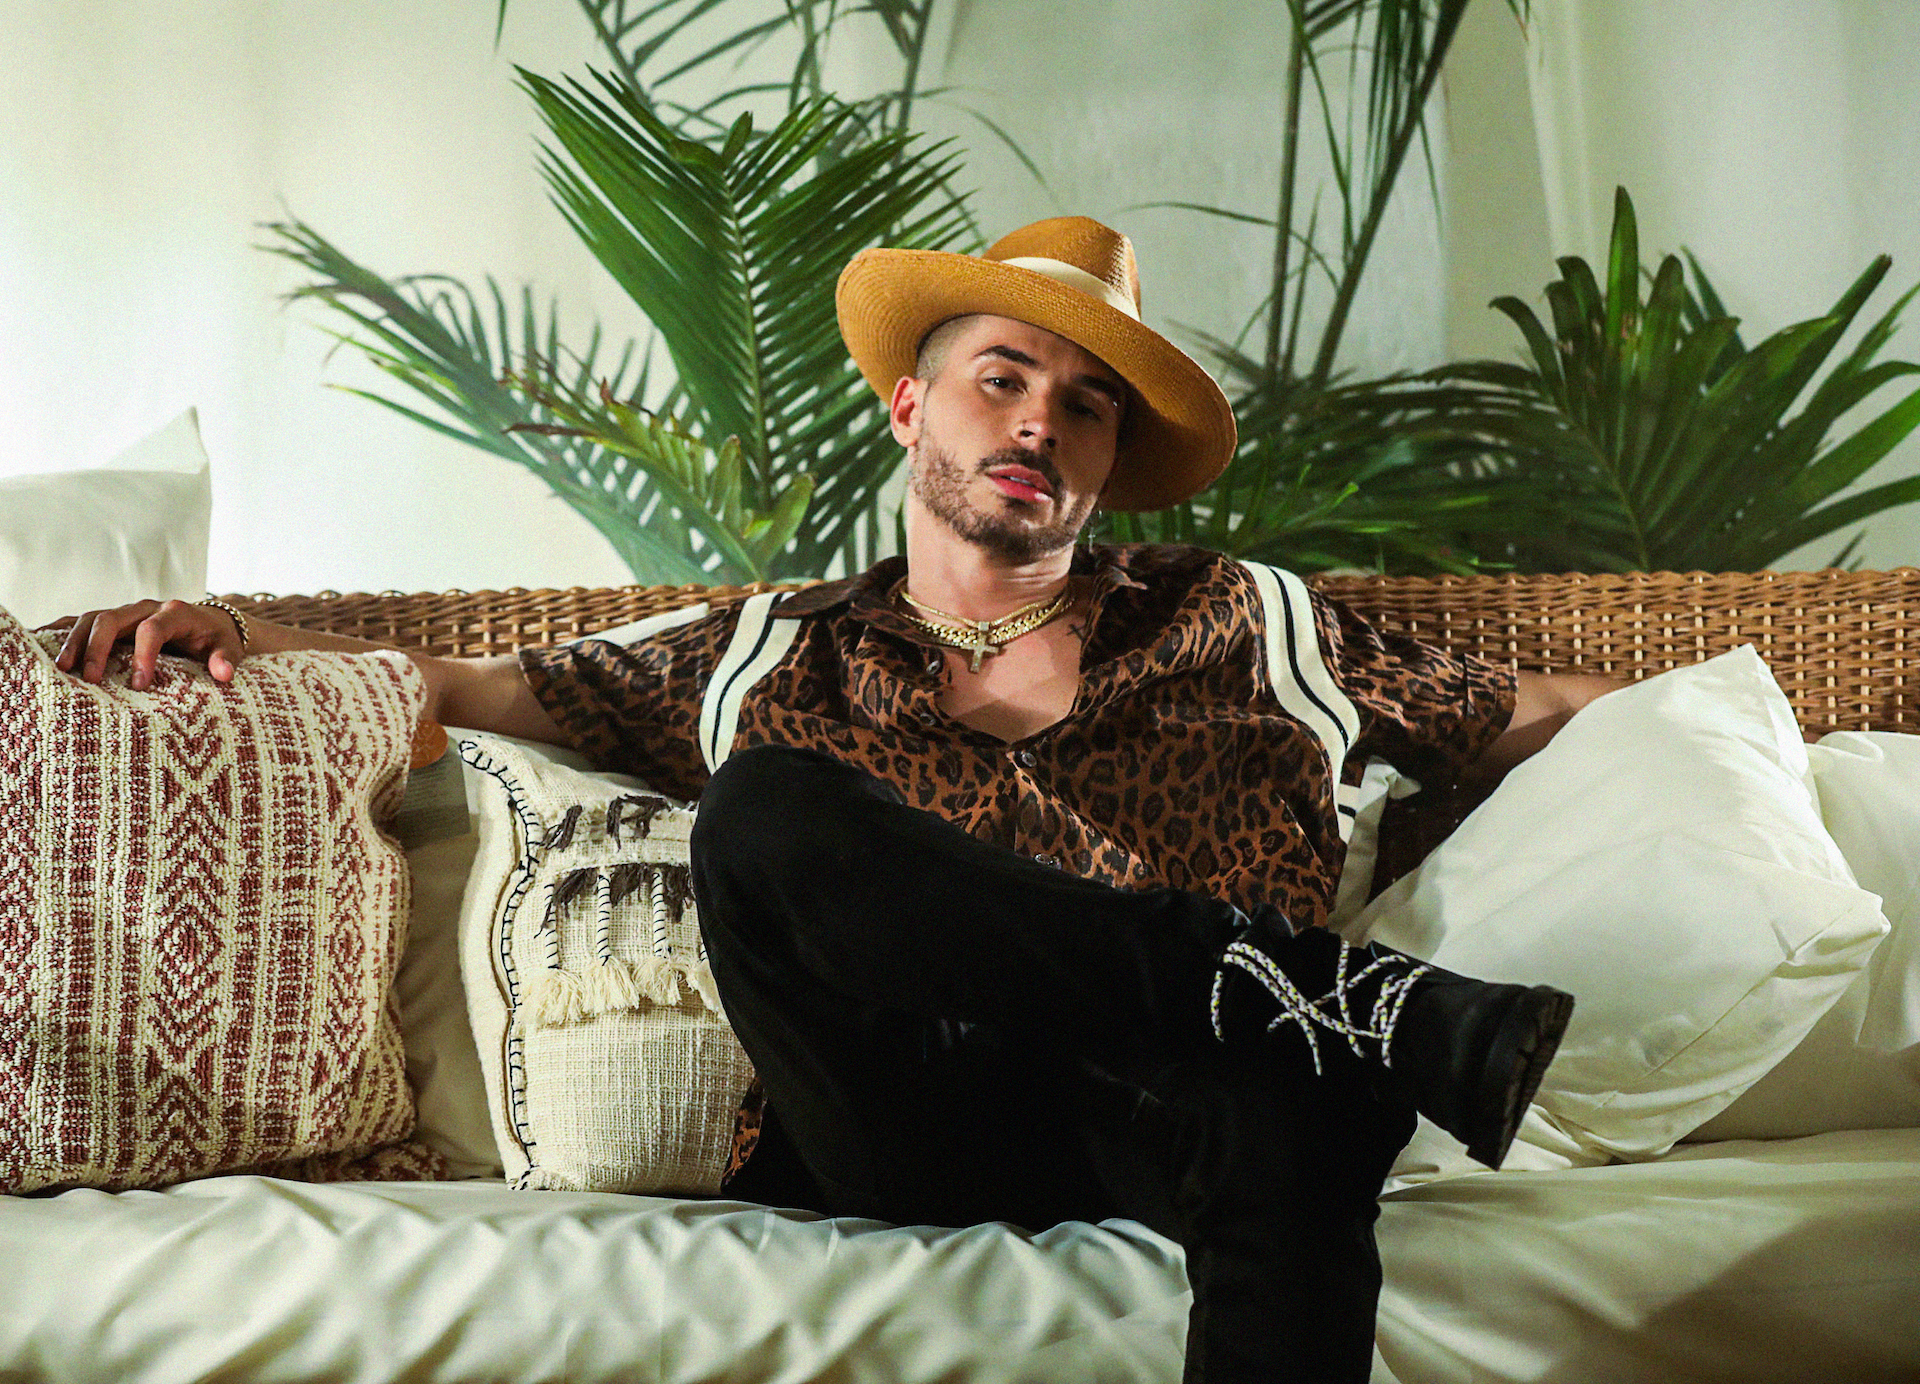 With Multiple Collaborations & Acting Roles, Reykon is Just Getting Started